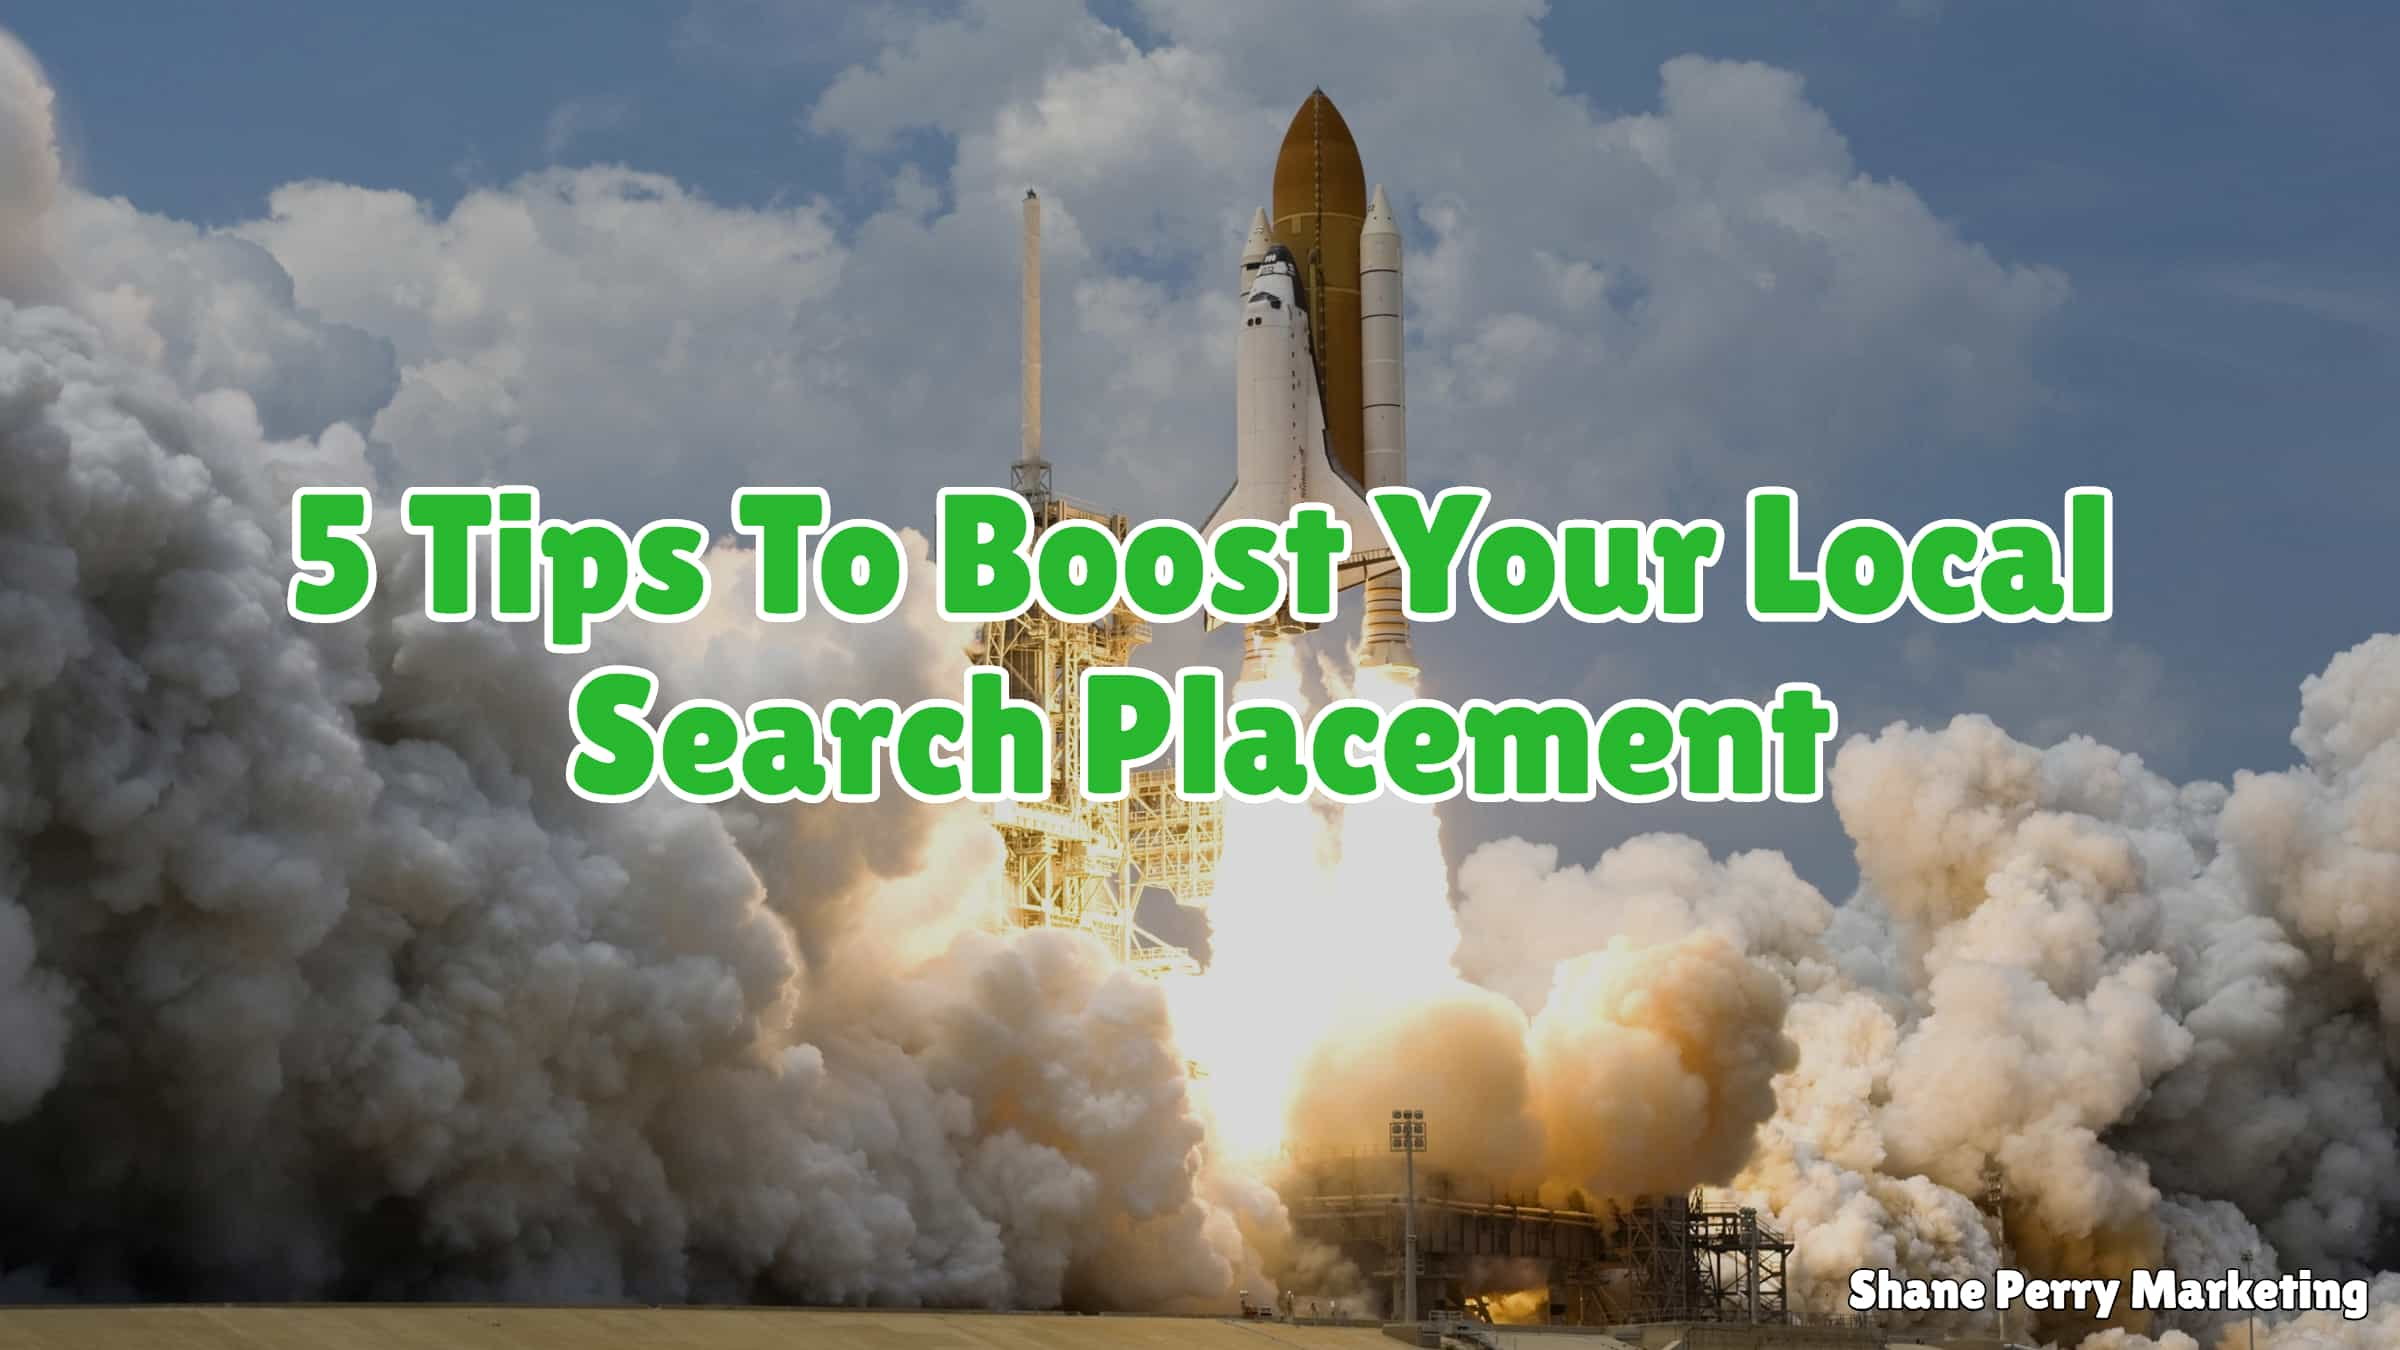 5 Tips To Boost Your Local Search Placement, Shane Perry Marketing